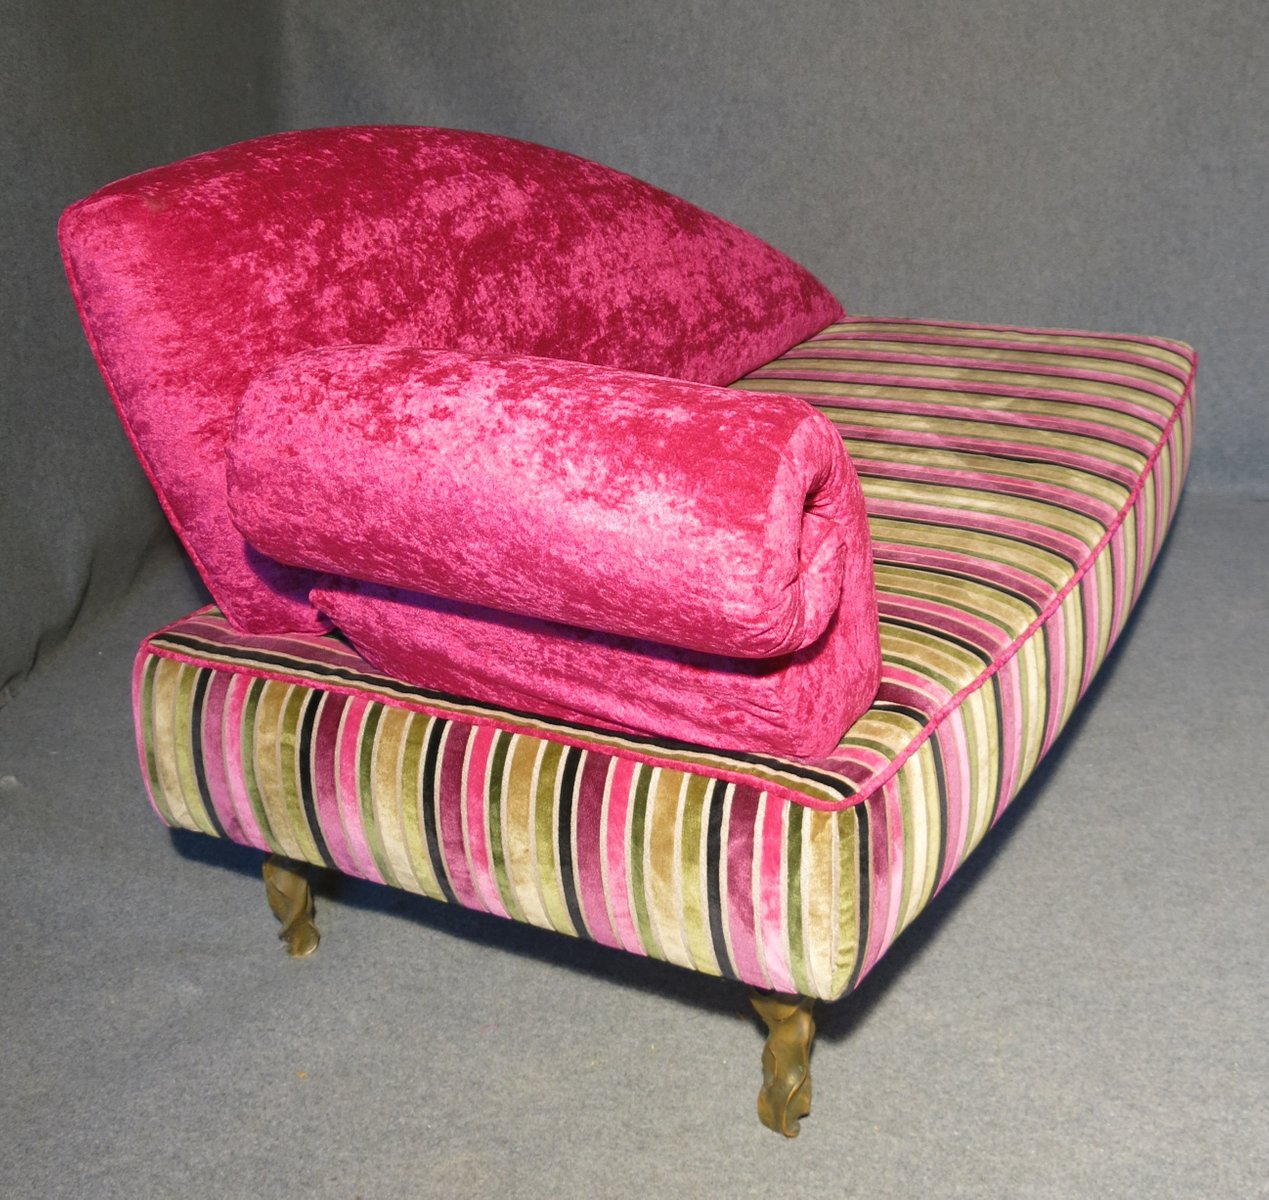 pink chaise lounge chair french bistro dining italian art deco velvet 1940s for sale